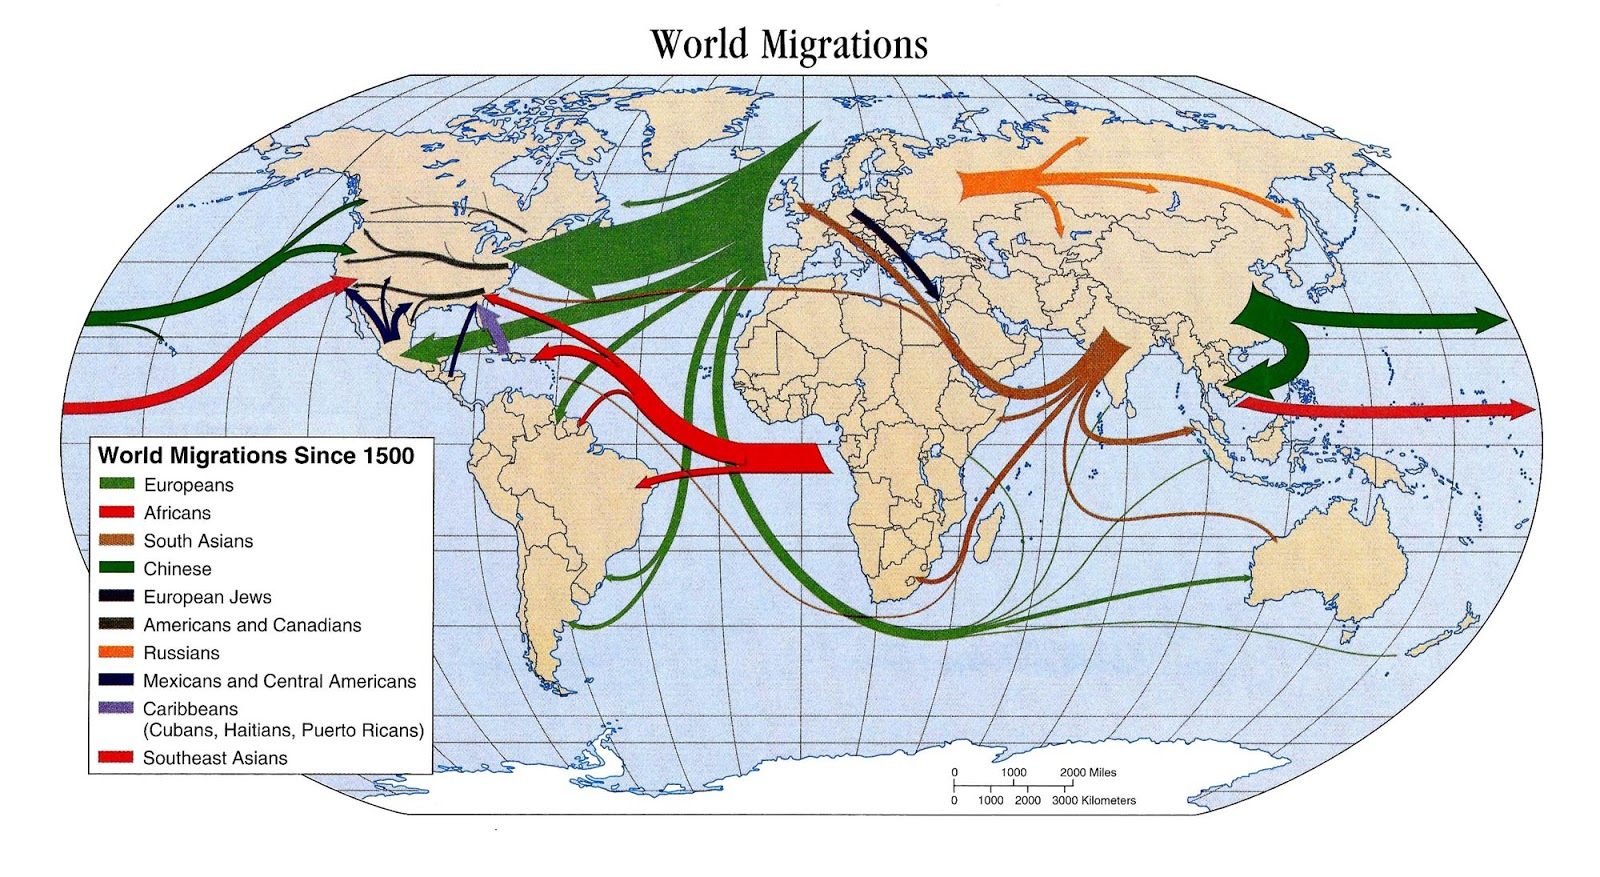 map world migrations since 1500